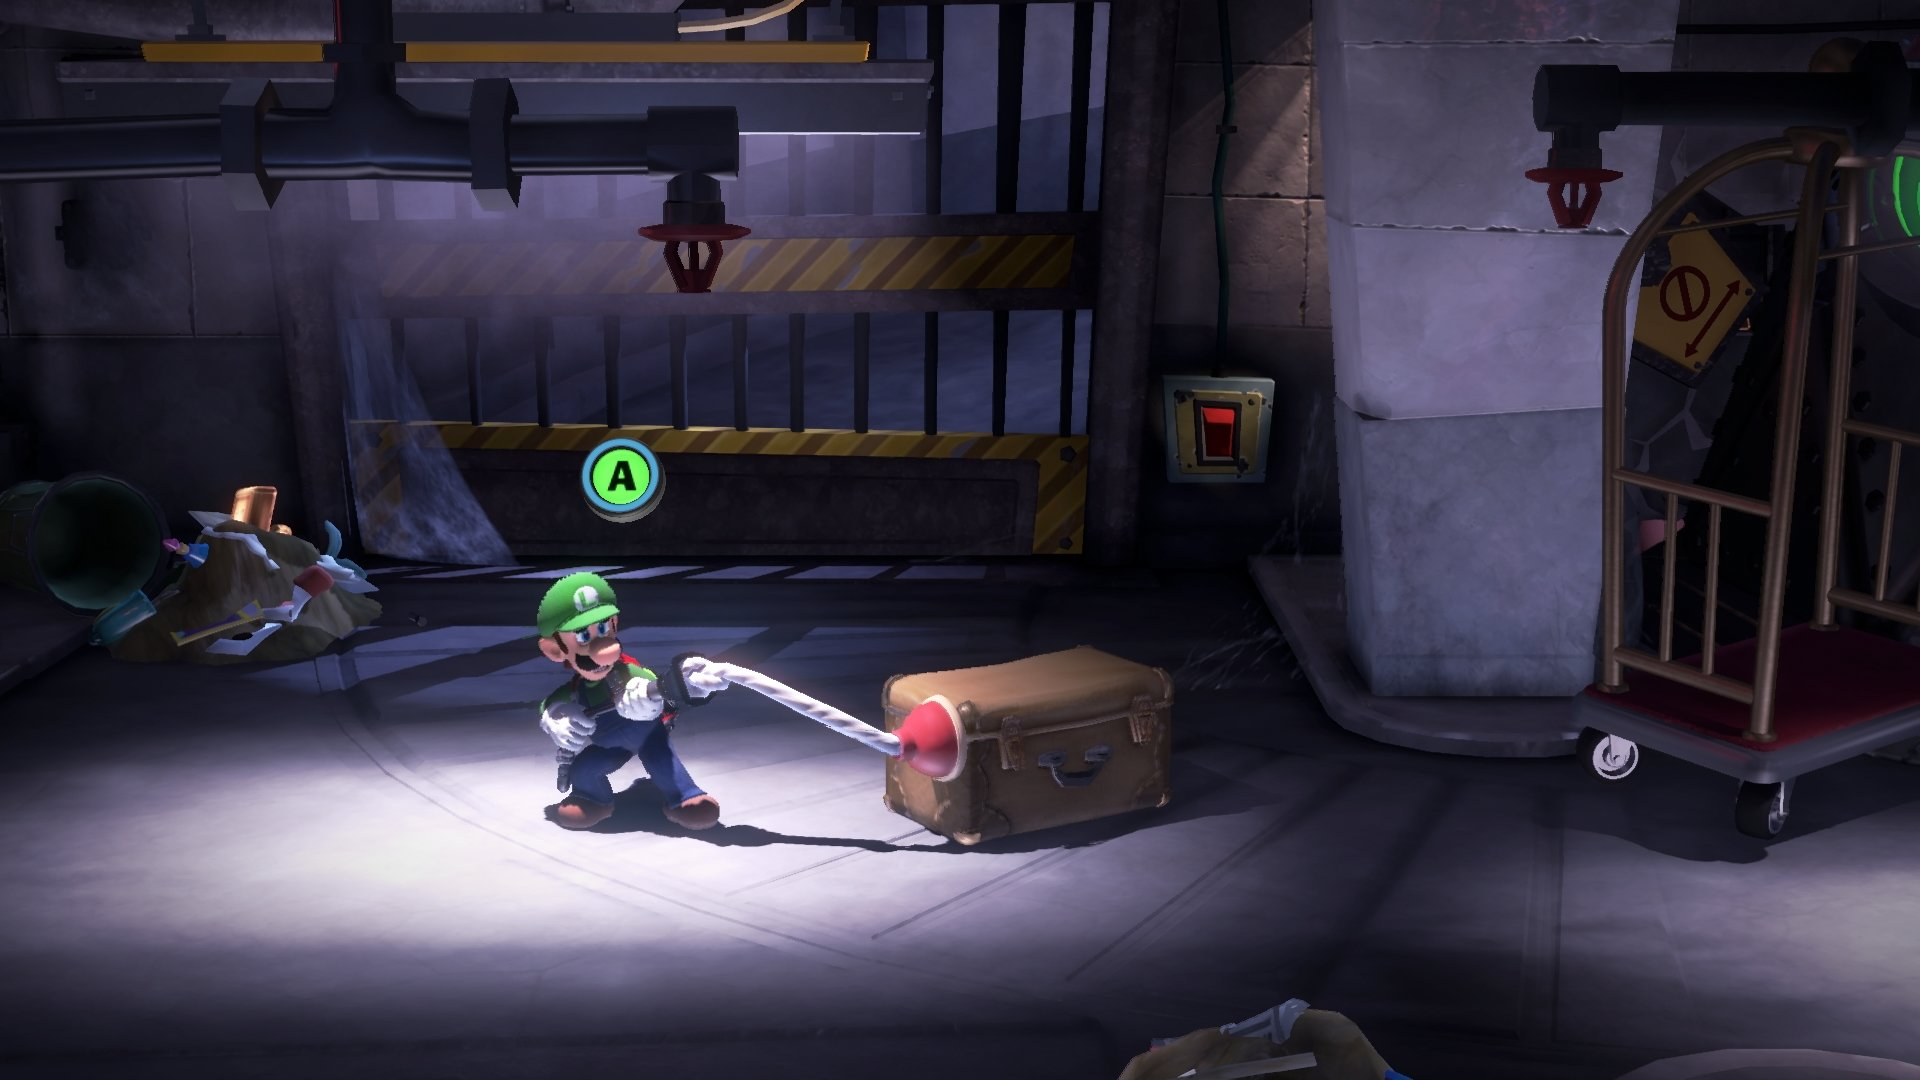 Luigi's Mansion 3 Plunger